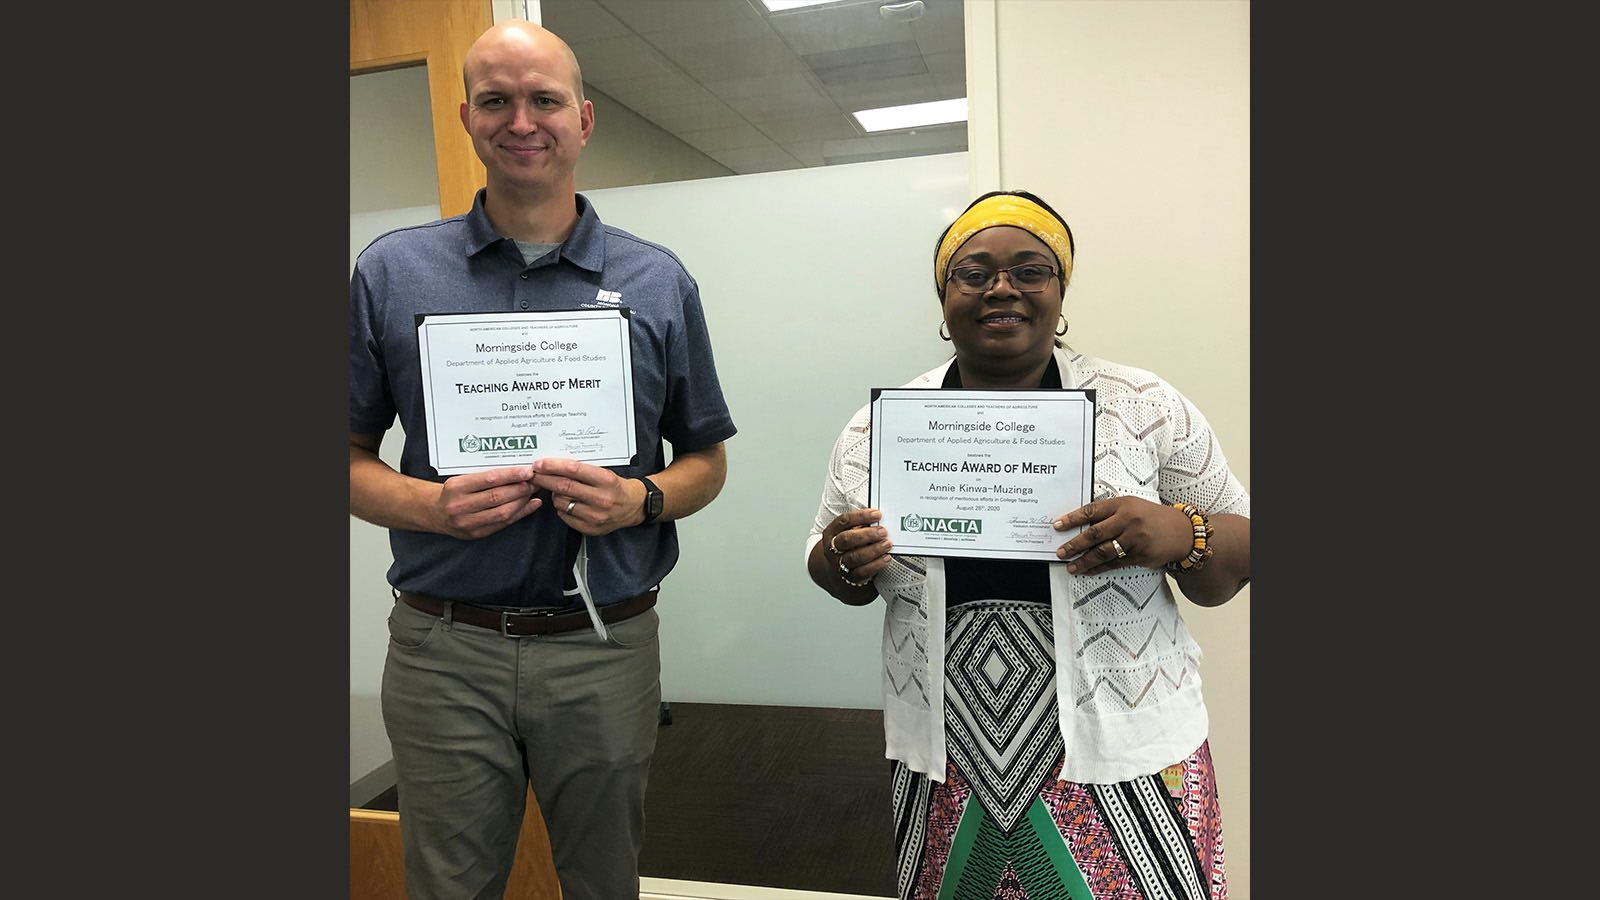 Daniel Witten and Annie Kinwa-Muzinga pose with their NACTA Teaching Awards